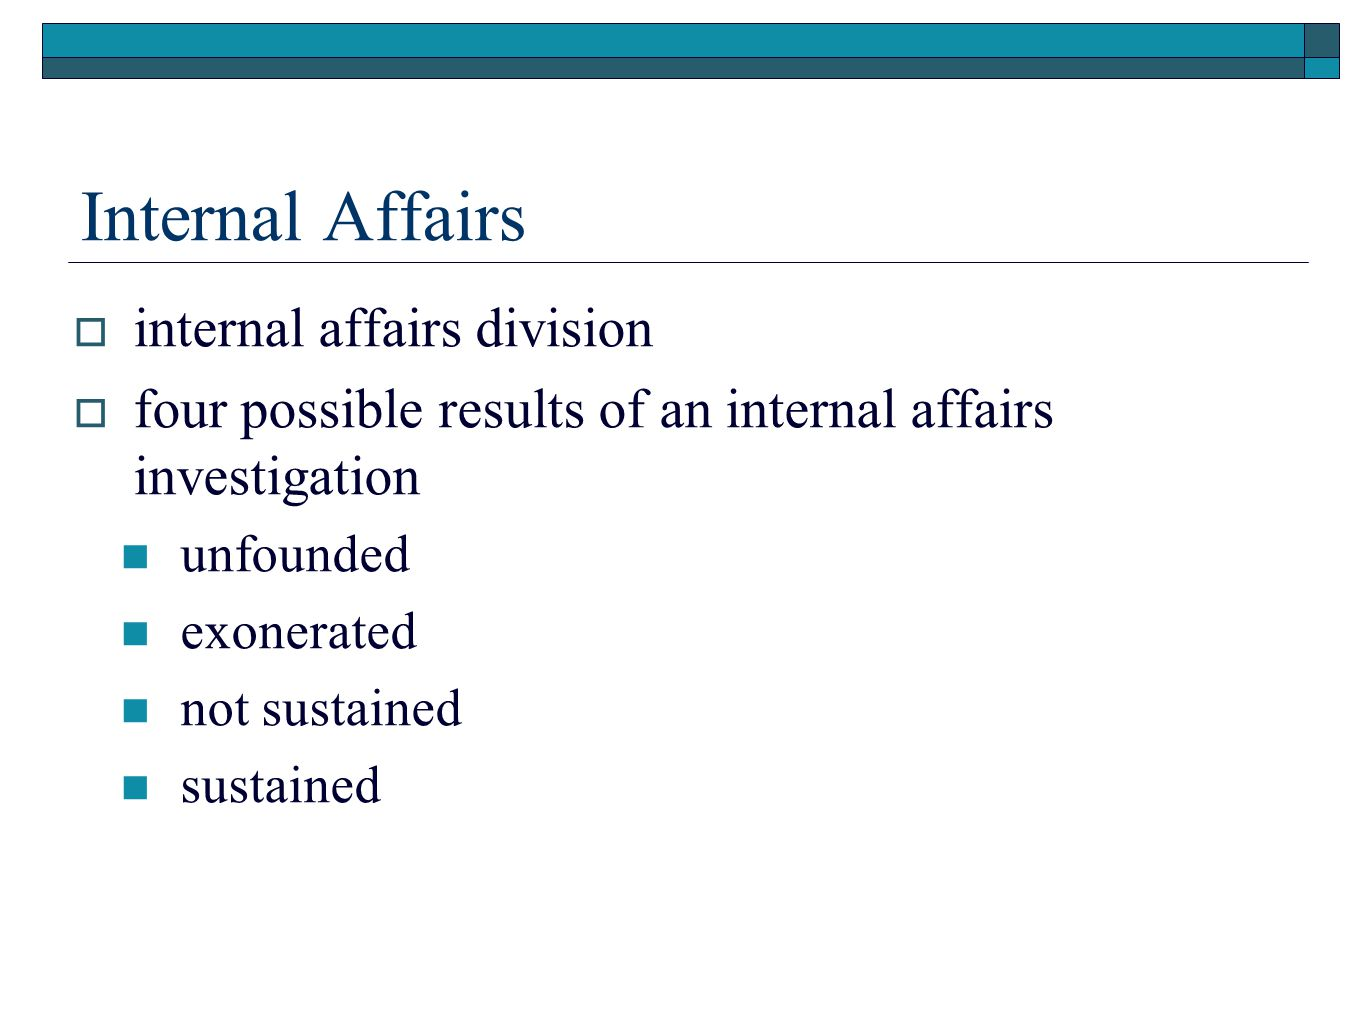 Internal Affairs internal affairs division